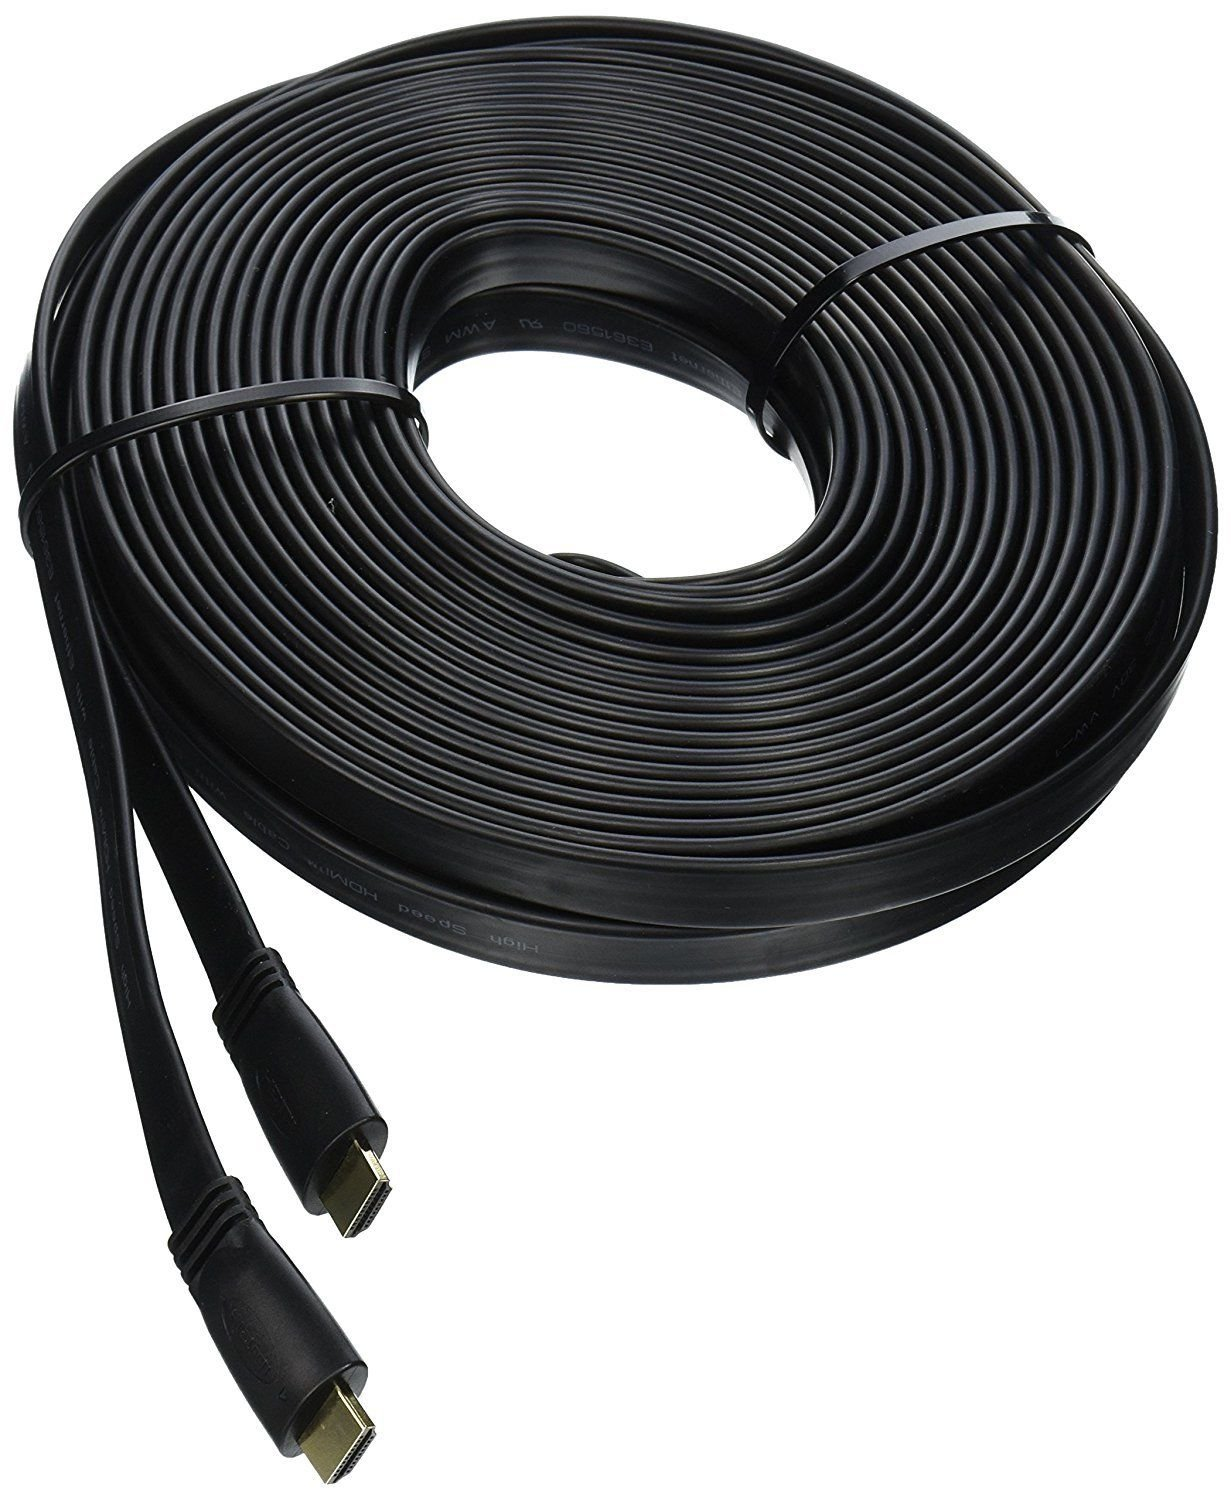 CableVantage FLAT HDMI Cable 50FT Cord Supports 3D Ethernet 1080P Audio Return, HDTV to Satellite Box Home Theater Video Game,For PC TV Monitors PS4 Xbox One Black